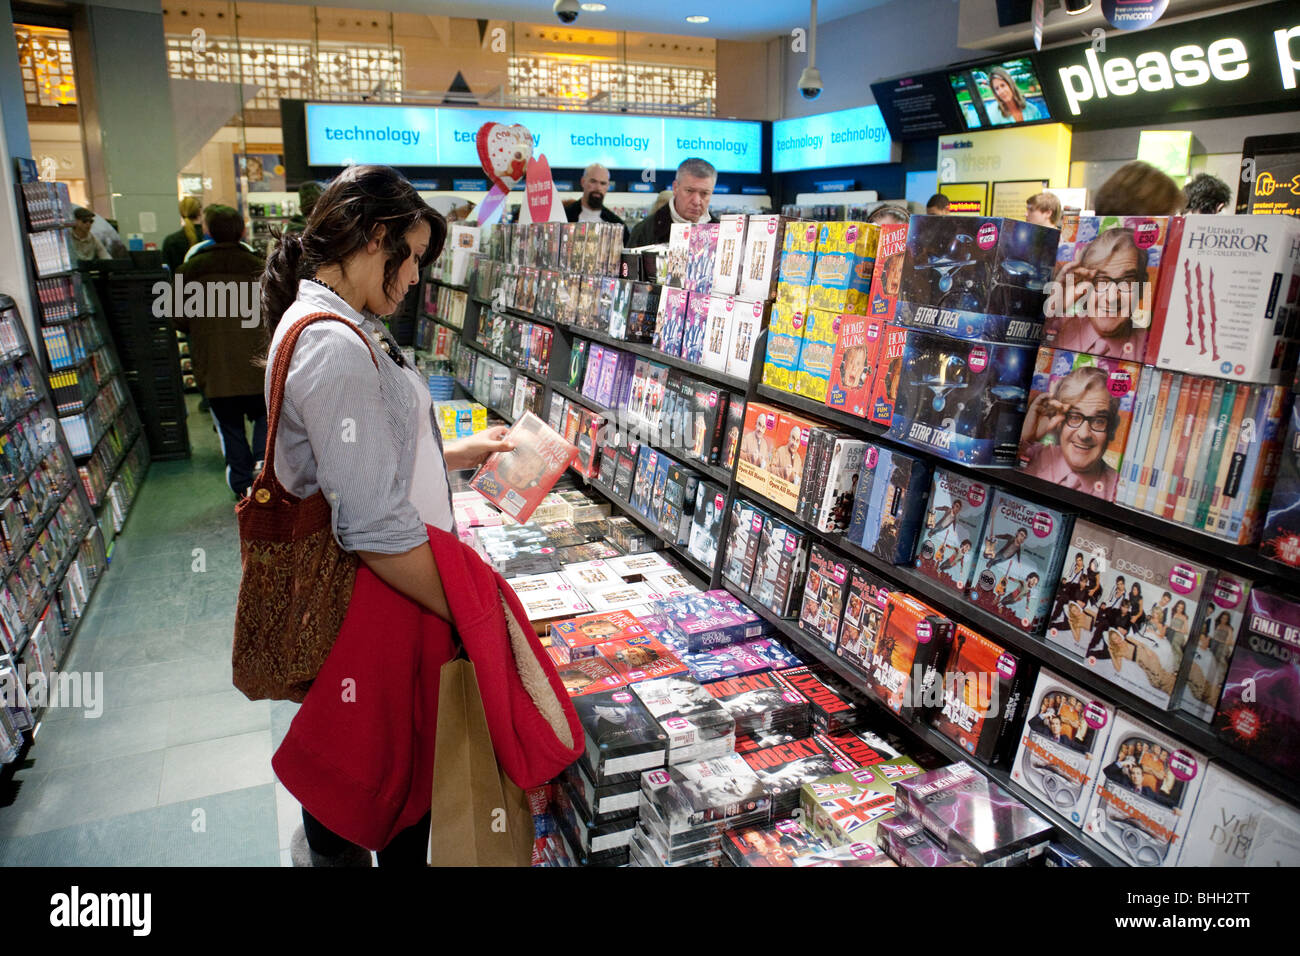 A teenage girl looking at Blu Ray DVD DVDs Interior  the HMV shop   Bluewater shopping mall  Kent UK. A teenage girl looking at Blu Ray DVD DVDs Interior  the HMV shop